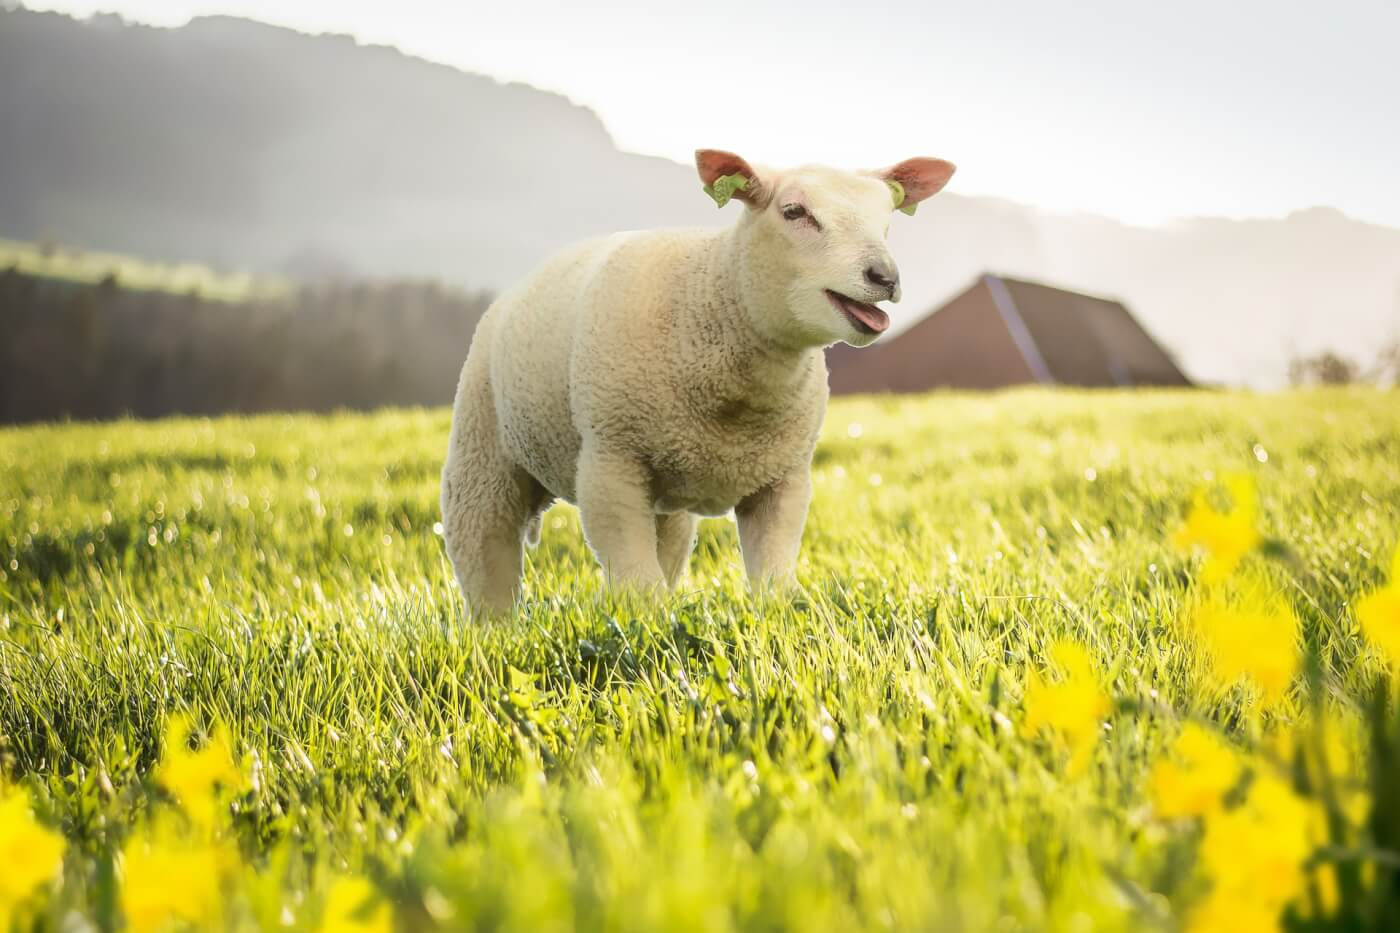 Sheep smiling in meadow